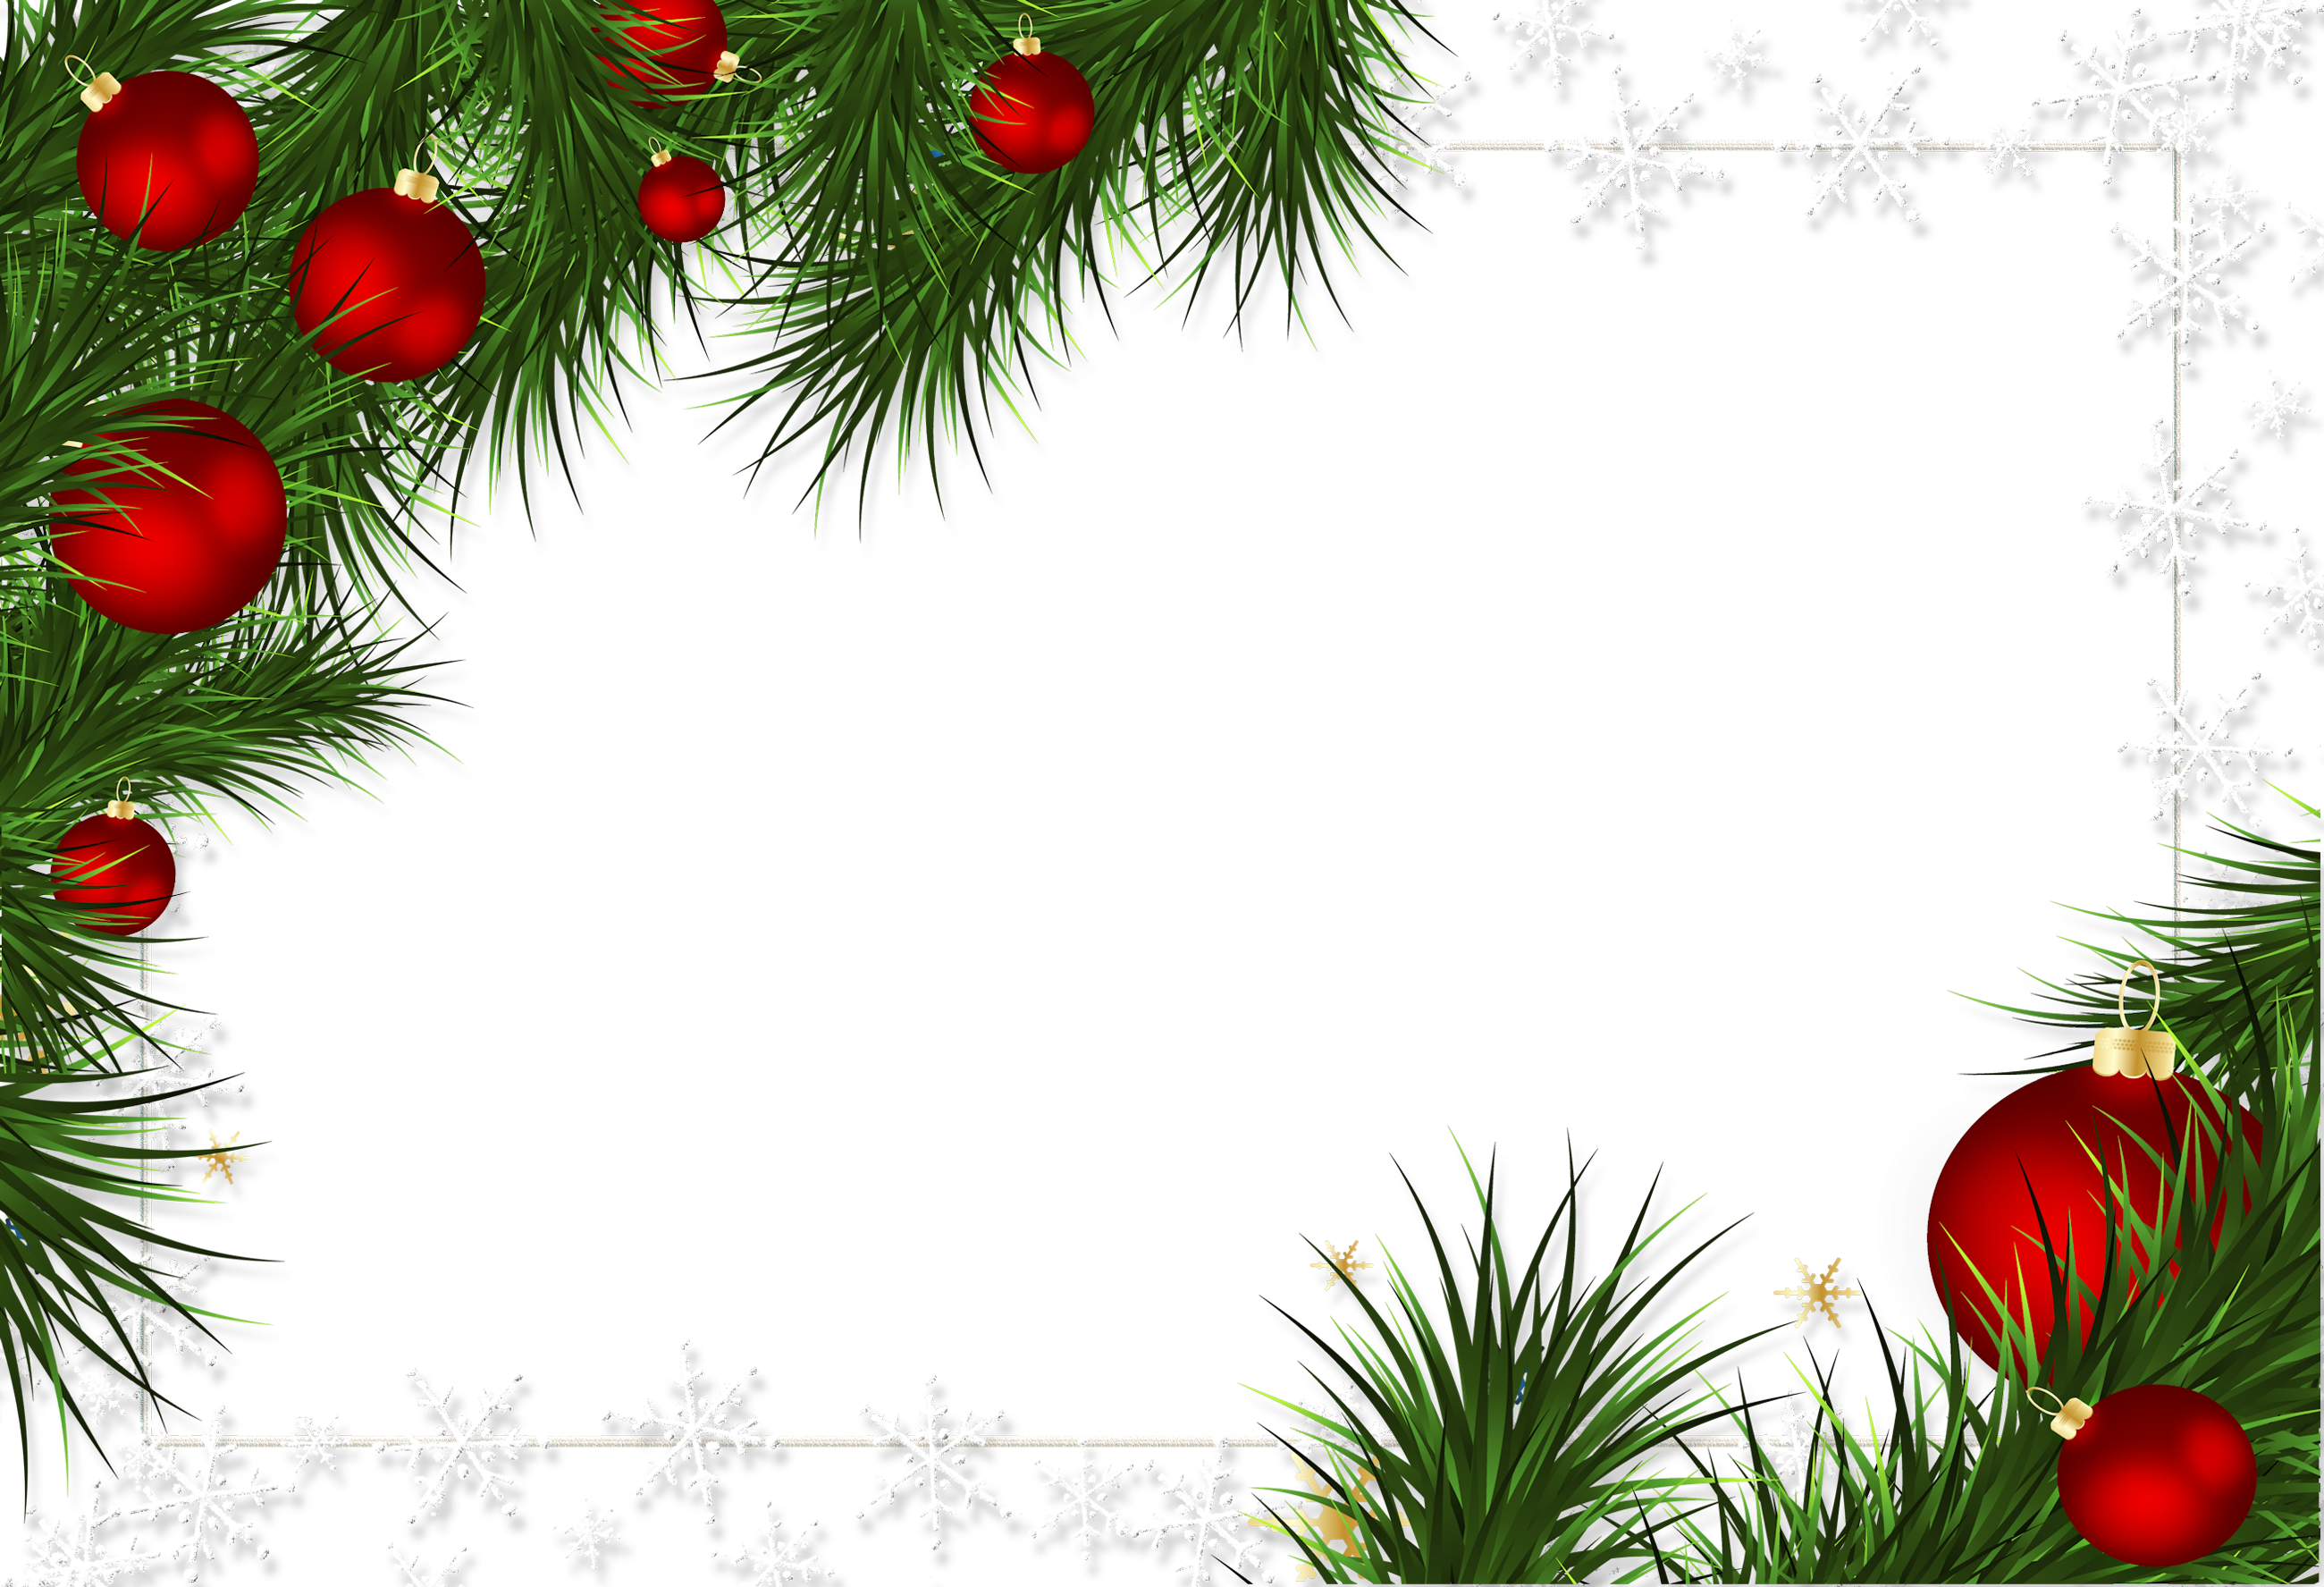 Christmas tree picture frame ornaments - Christmas Transparent Png Borders And Frames Christmas Christmas Frames Frame Ornaments Pine Png Transparent Png